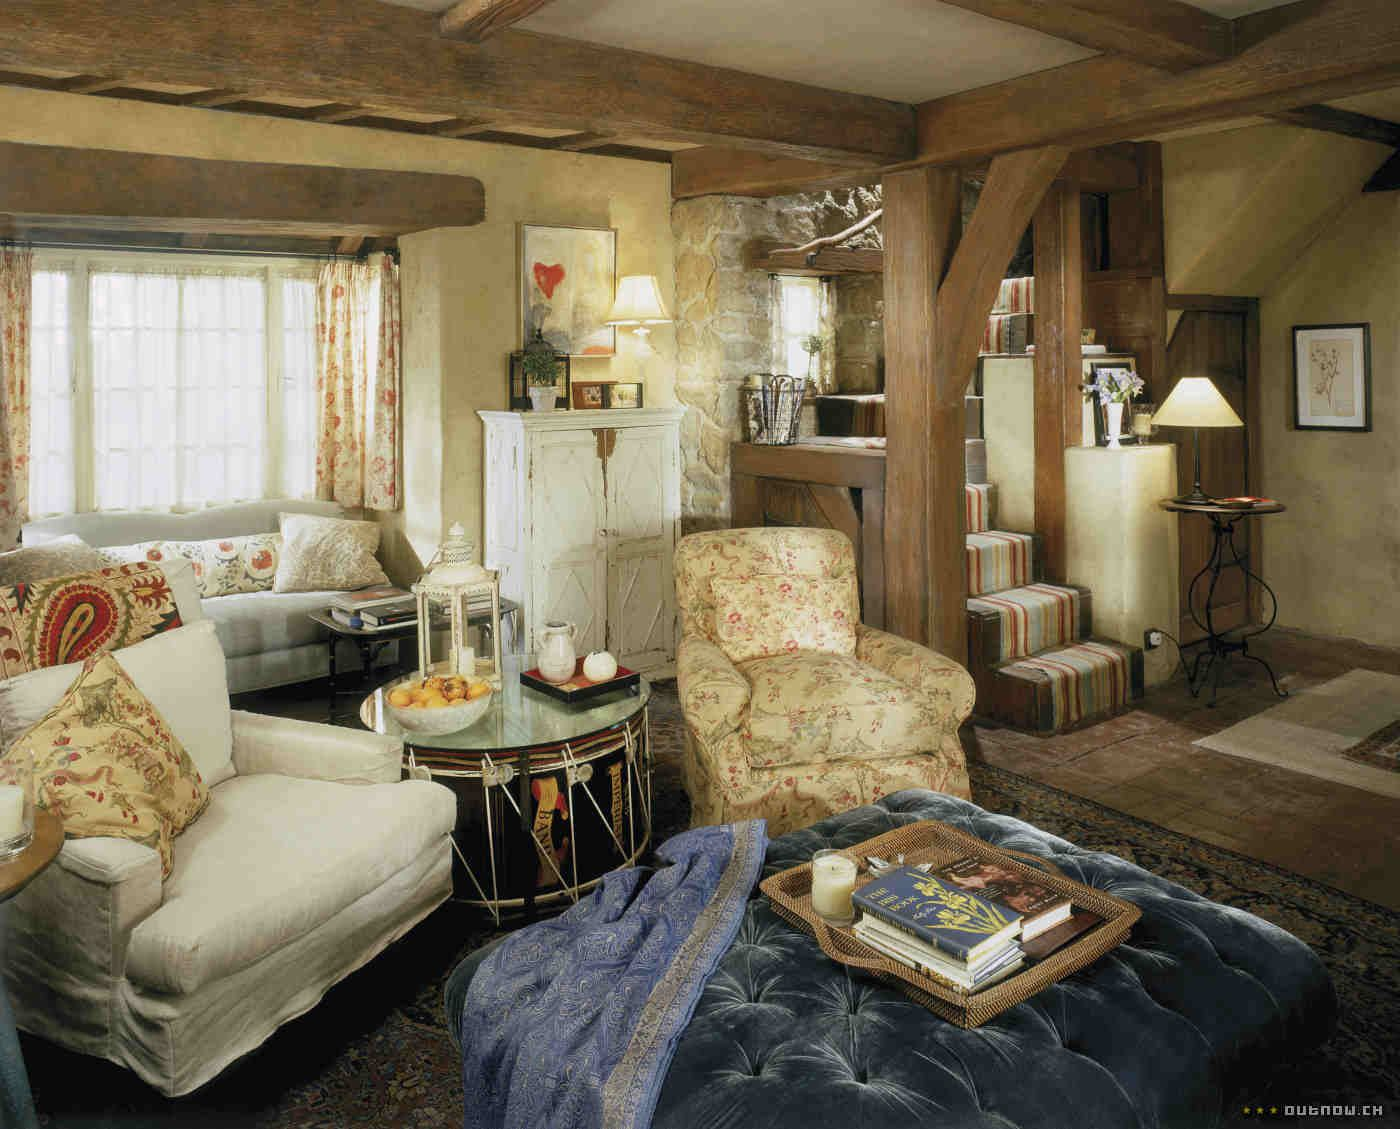 English Cottage Living Room the holiday iris' cottage | for the home | pinterest | iris and house